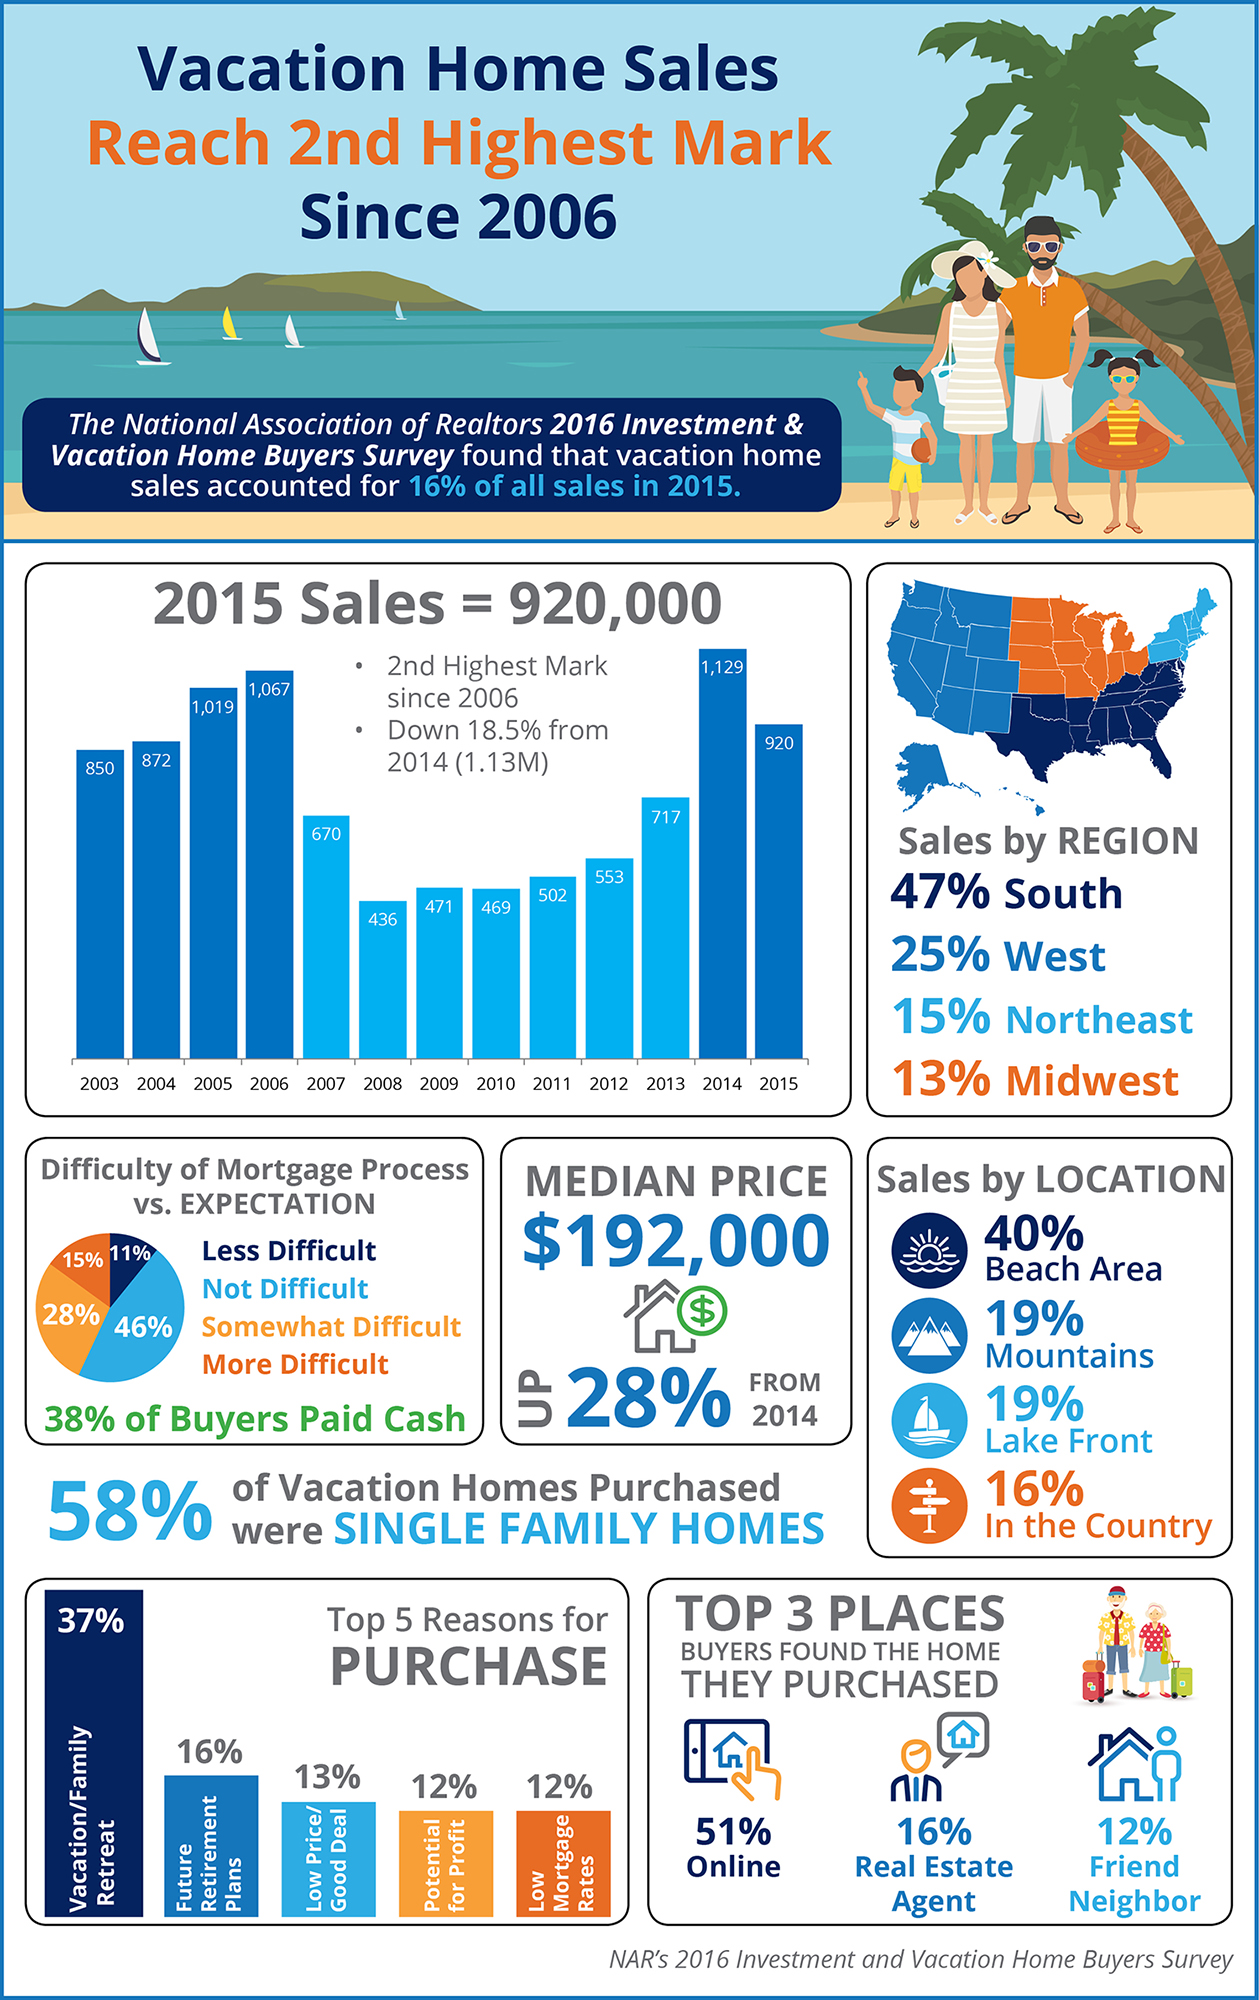 Vacation Home Sales Reach 2nd Highest Mark Since 2006 [INFOGRAPHIC] | Simplifying The Market